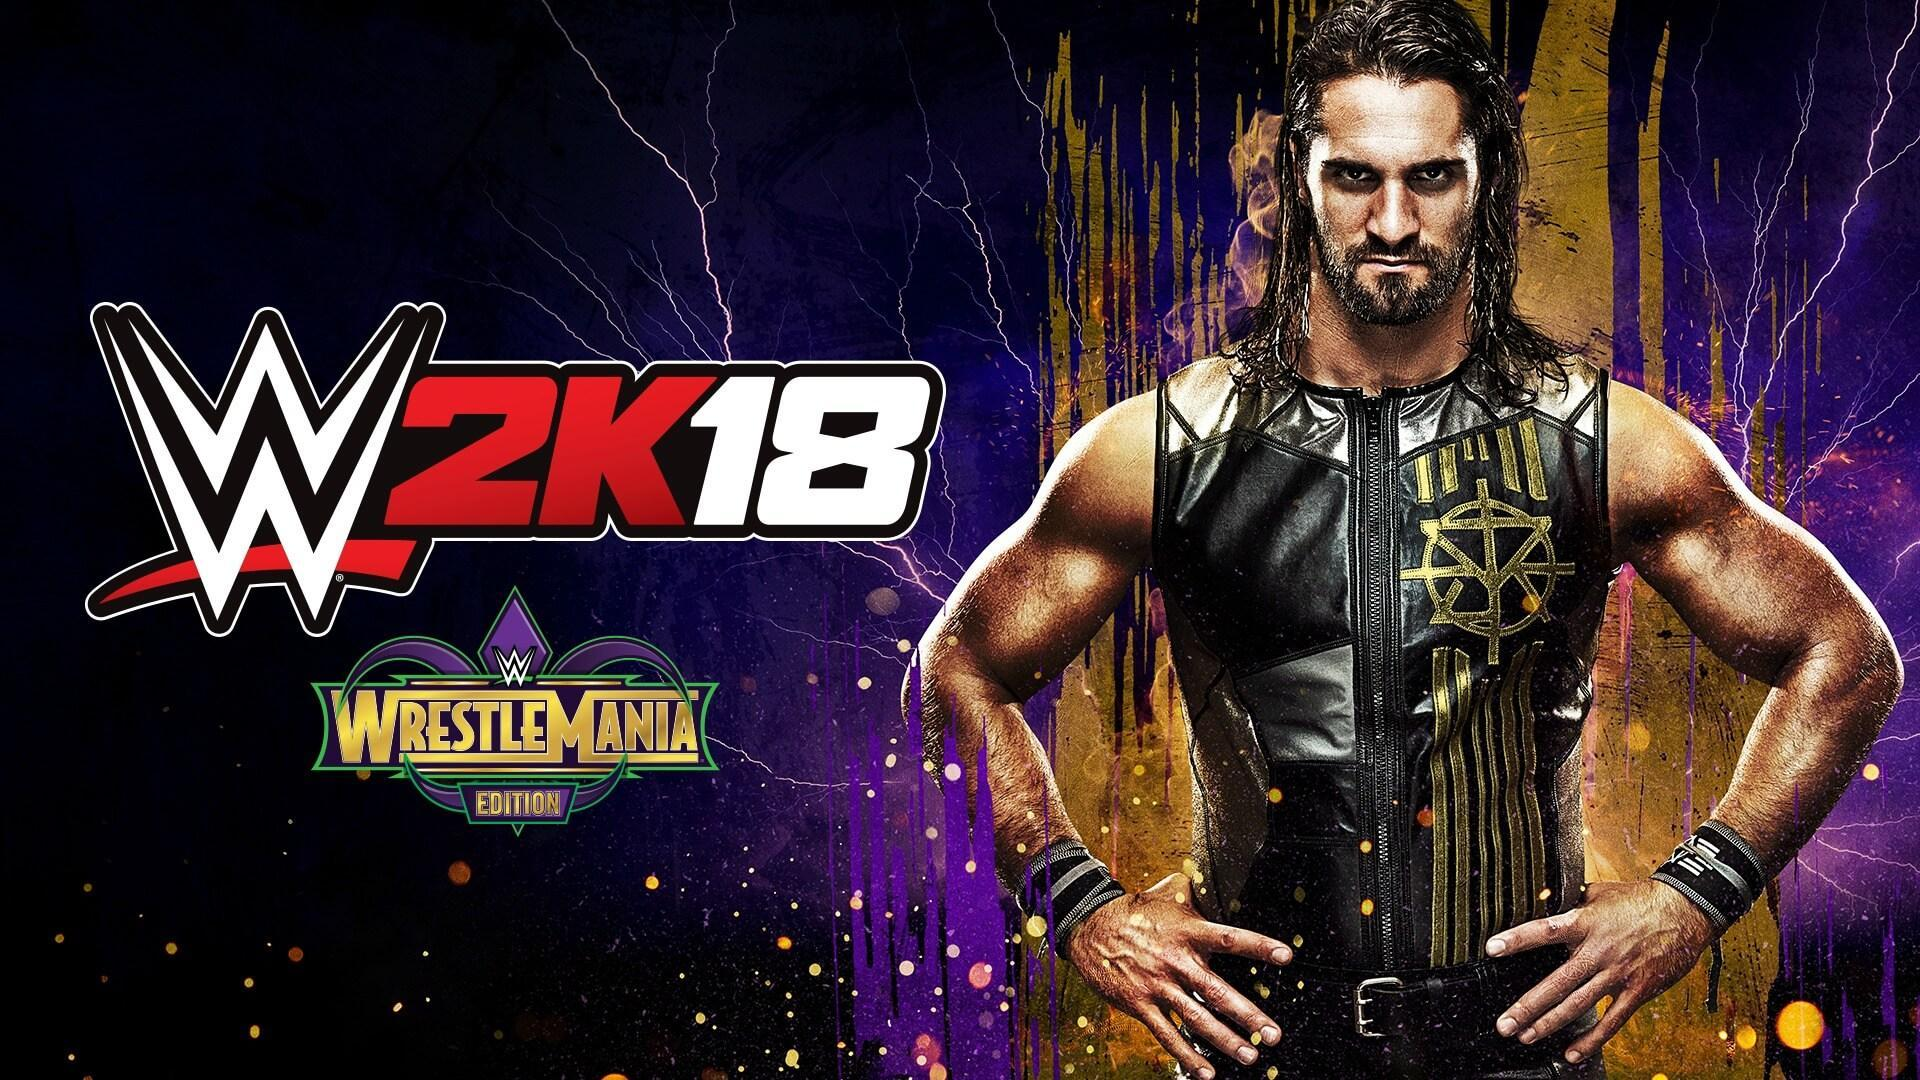 WWE 2K18: WrestleMania Edition Releasing Internationally on March 23